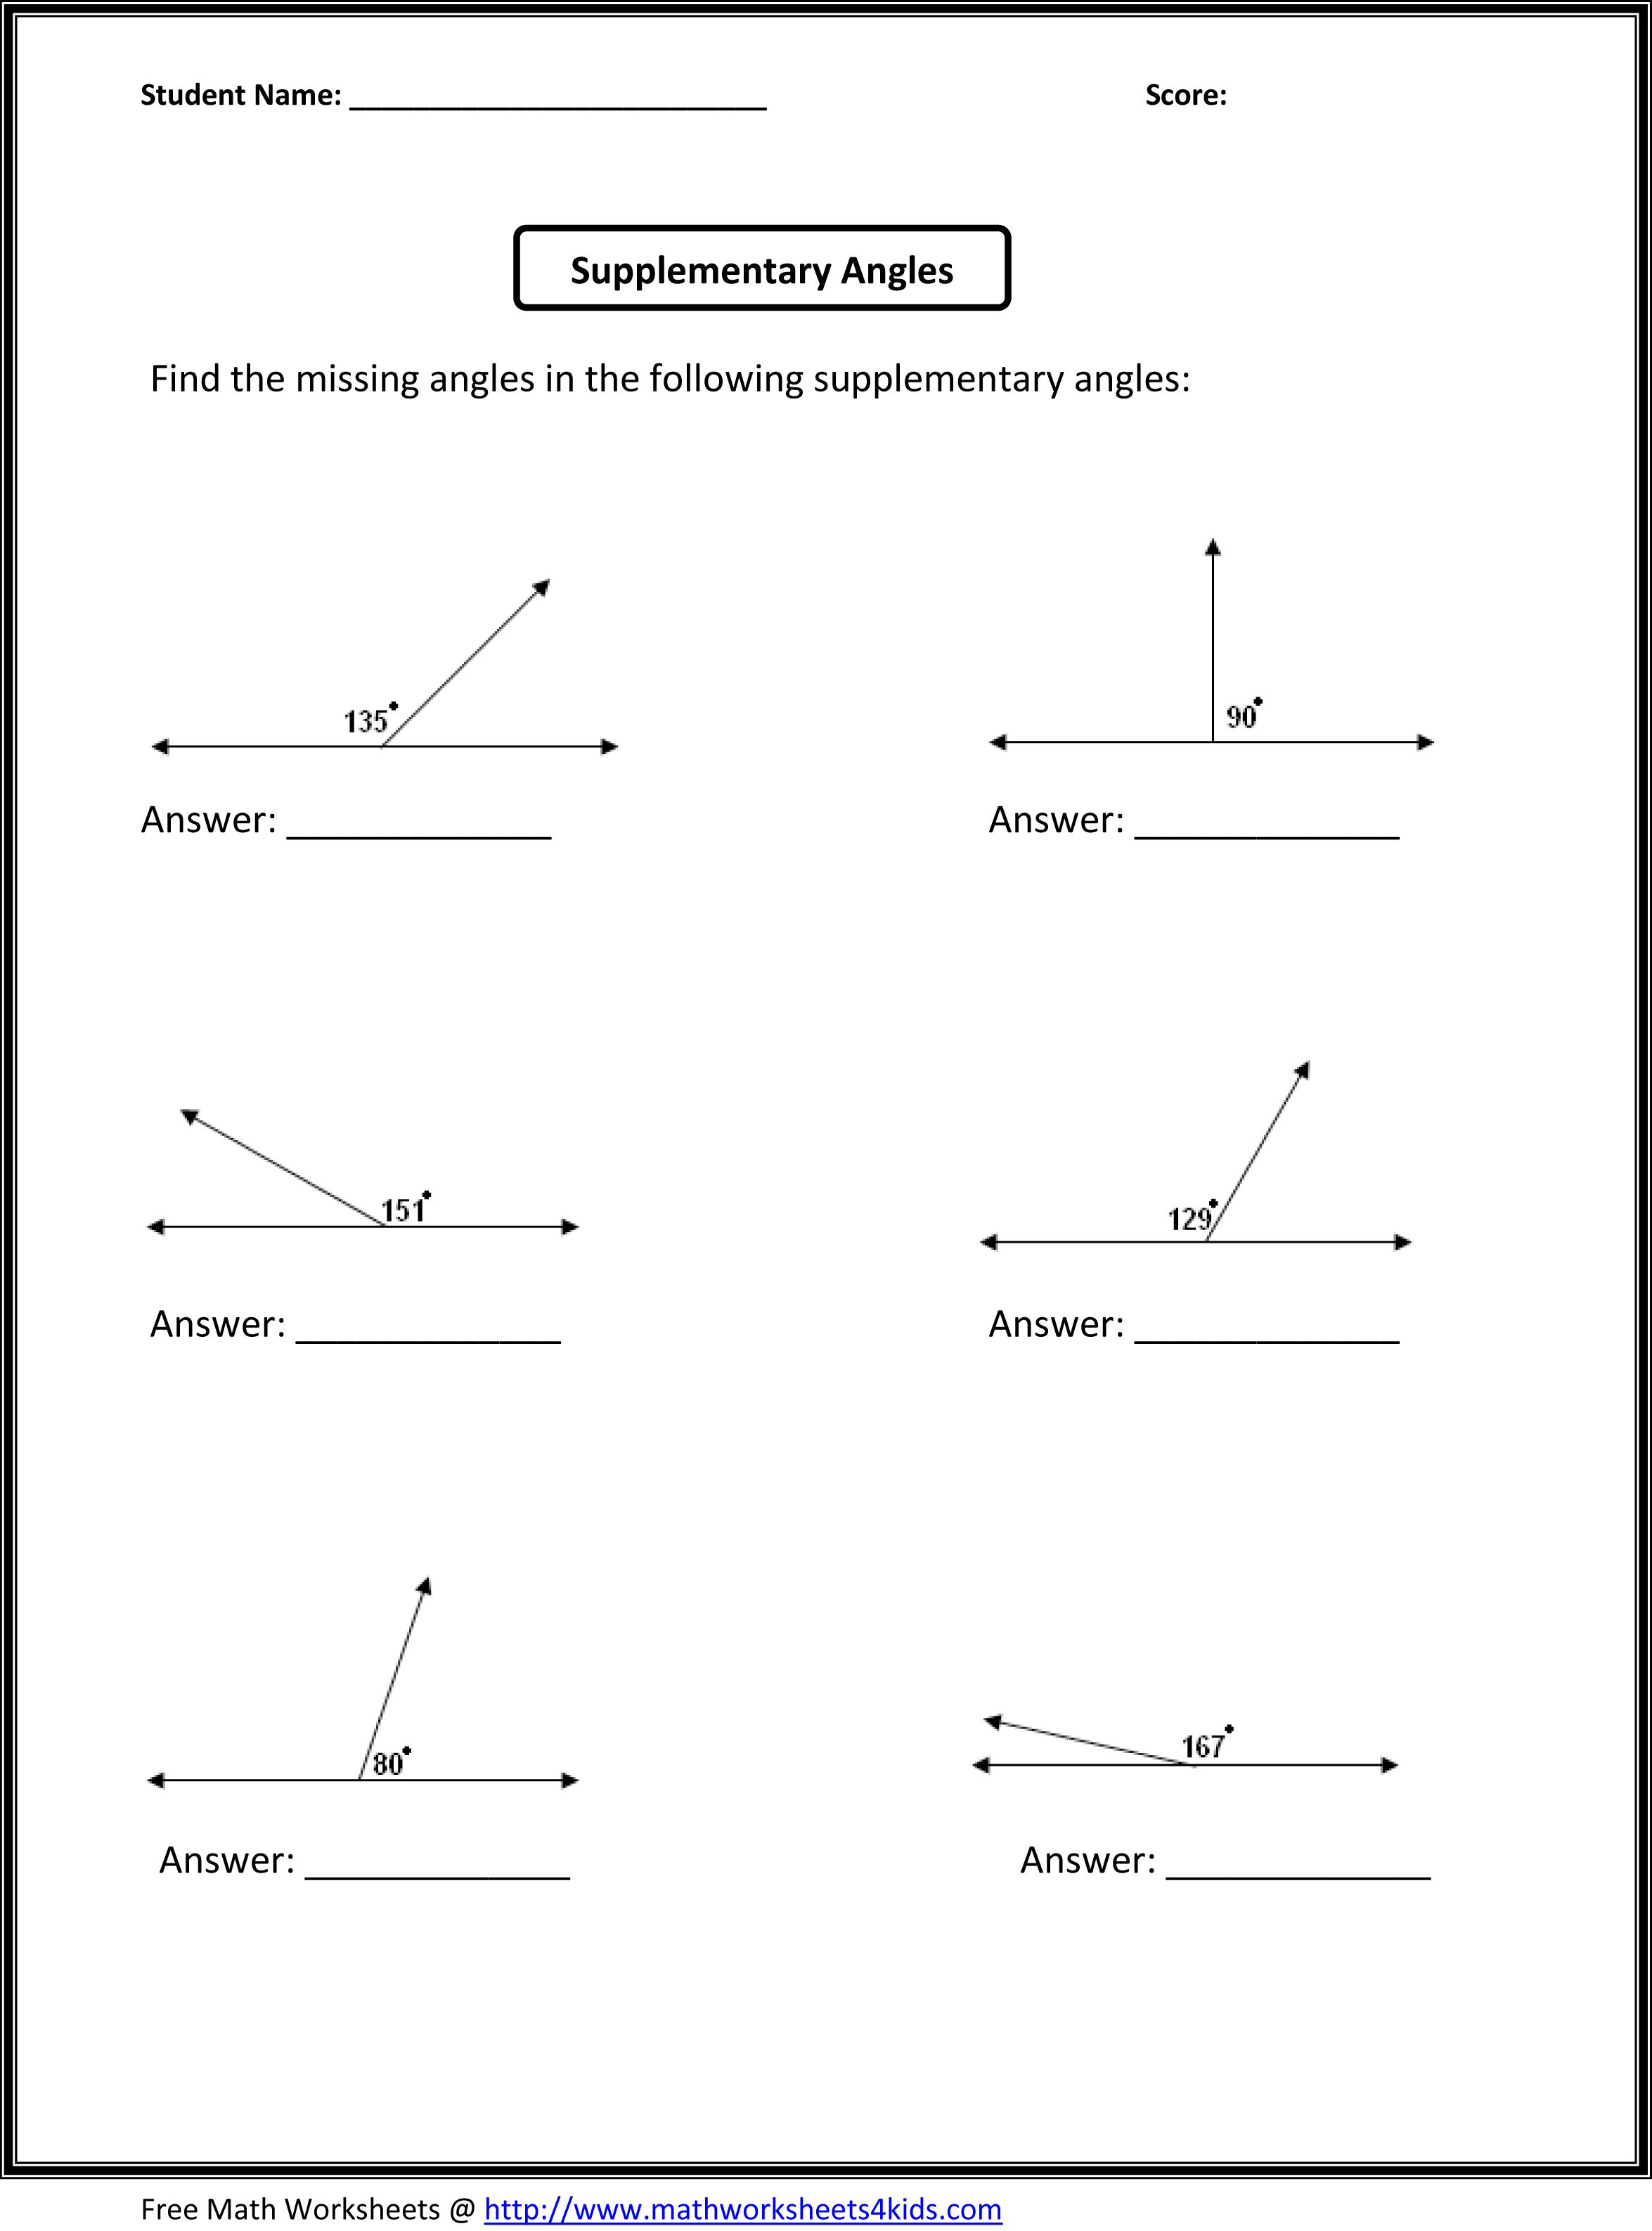 Worksheets 8th Grade Math Worksheets Printable supplementary angles classroom madness pinterest math sixth grade worksheets